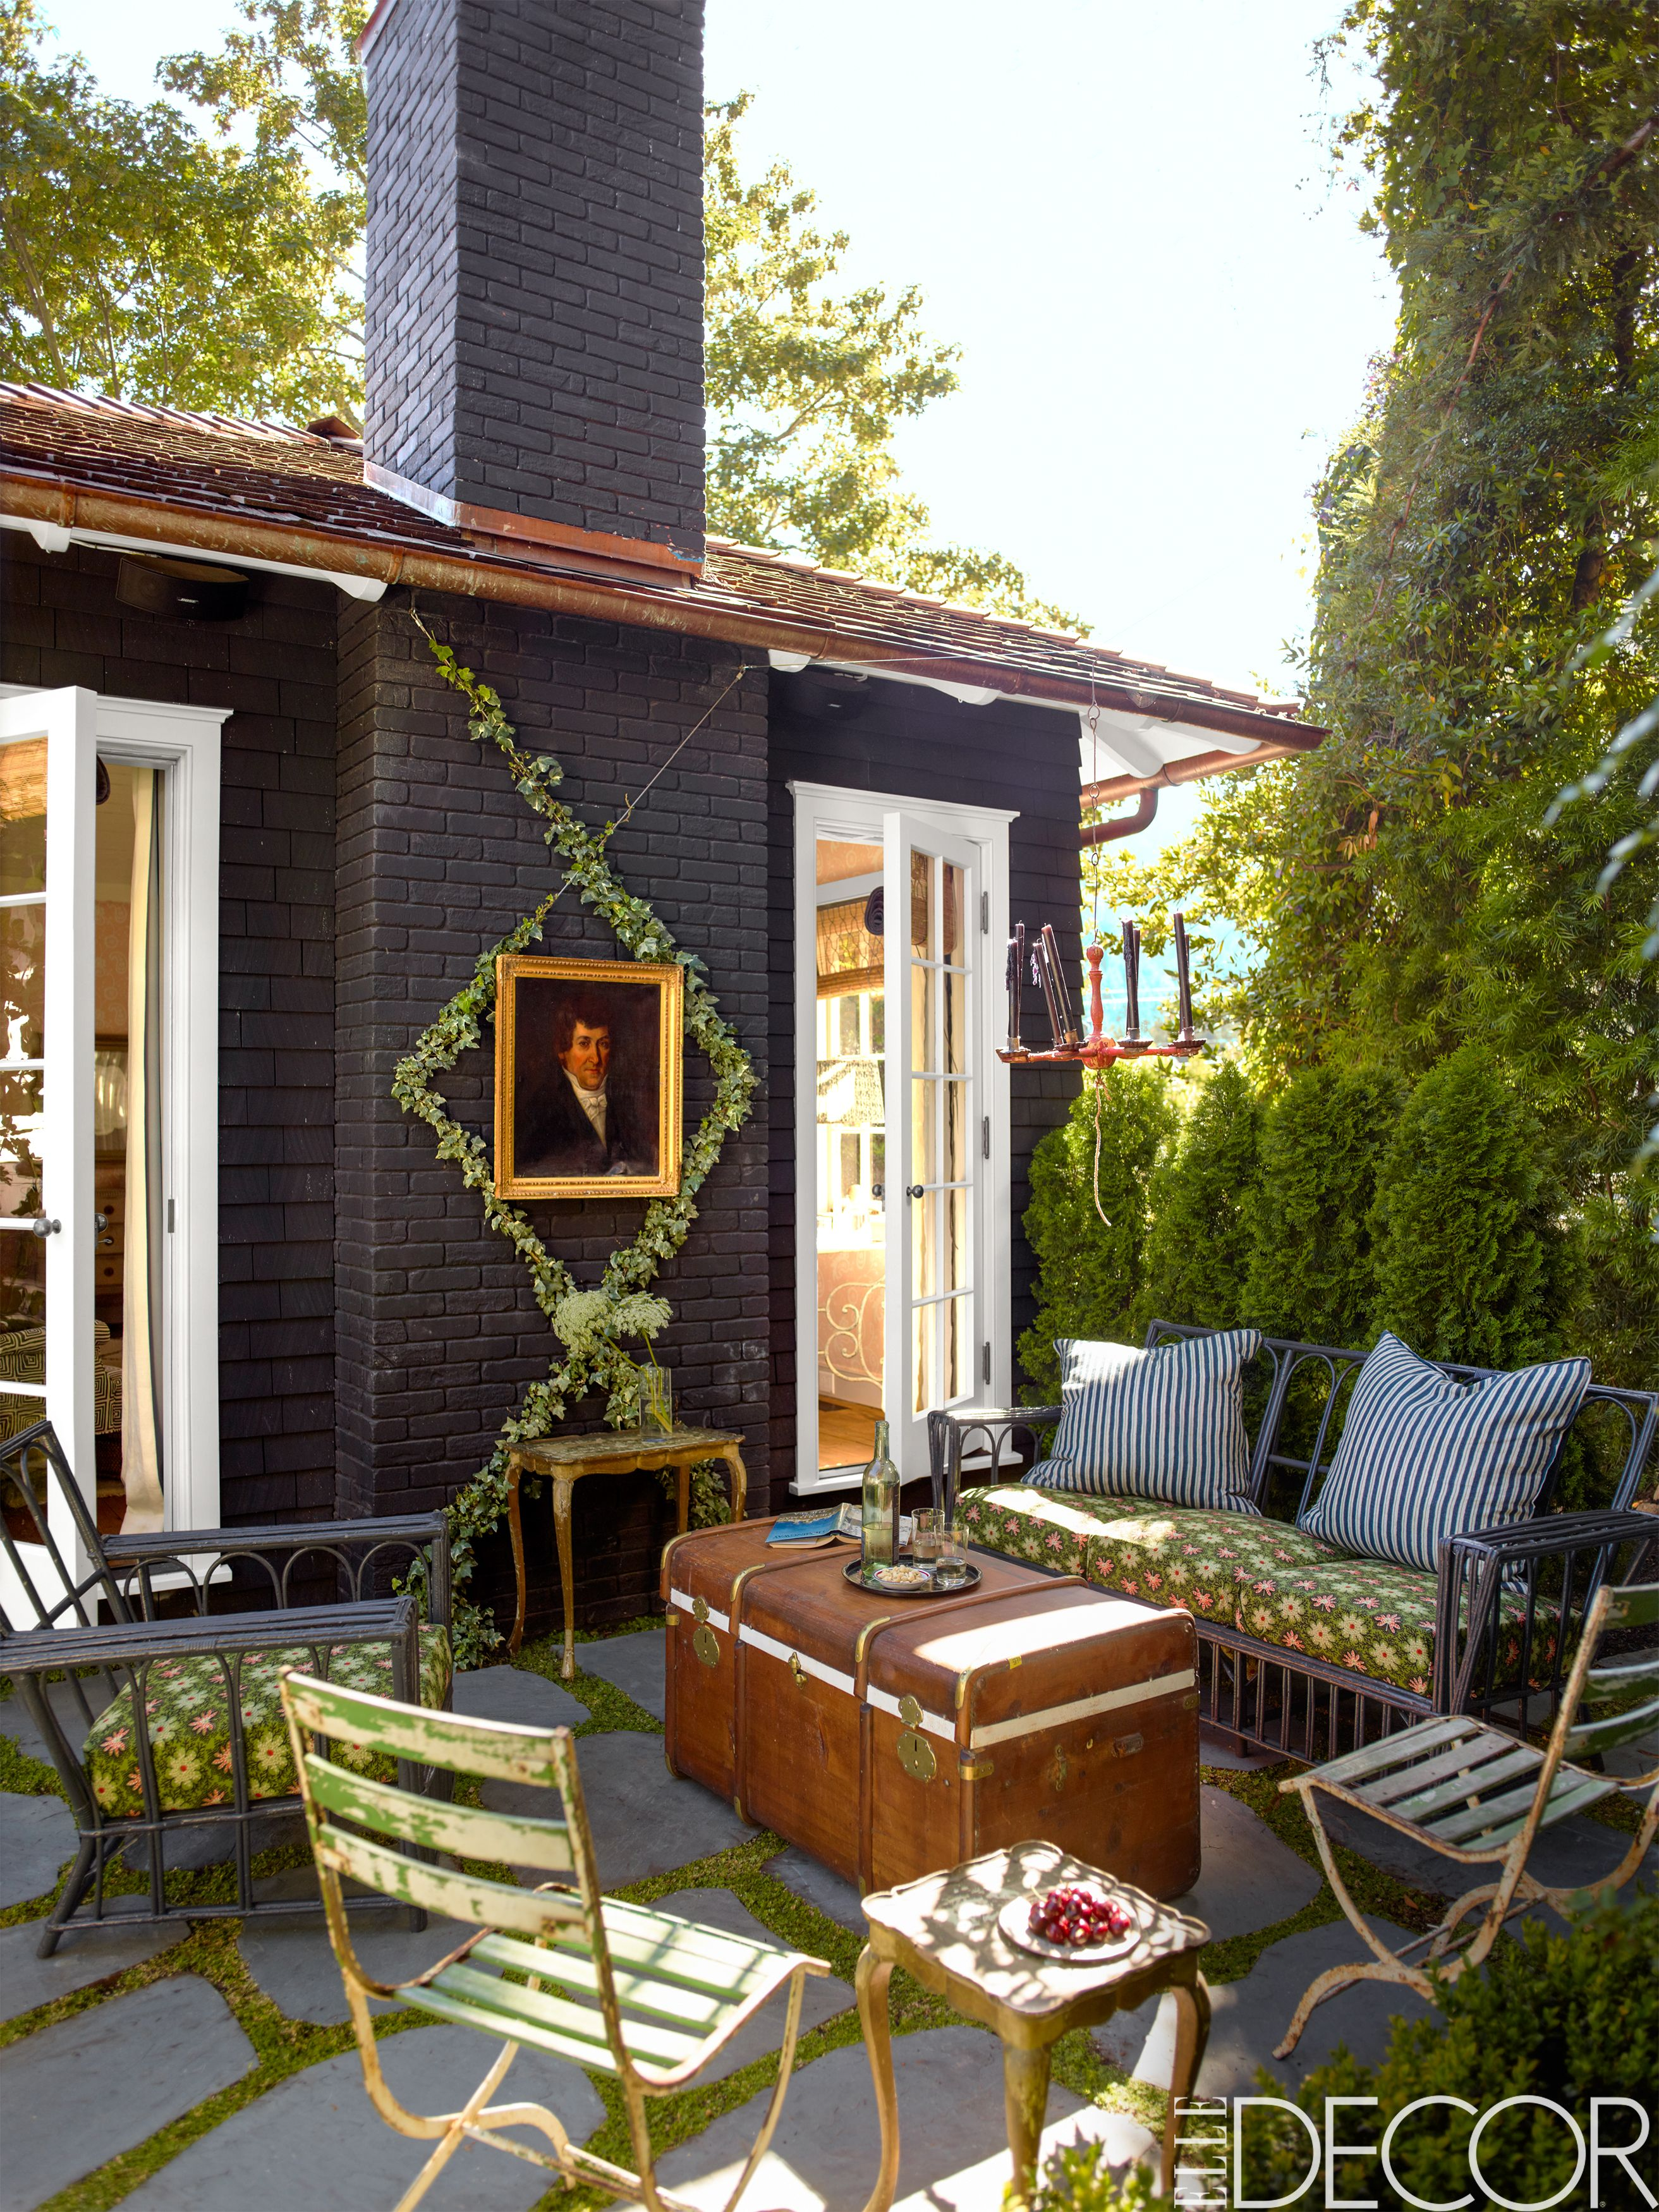 Patio ideas and porch ideas & 35 Porch Decorating Ideas - Front and Back Porch Design Pictures